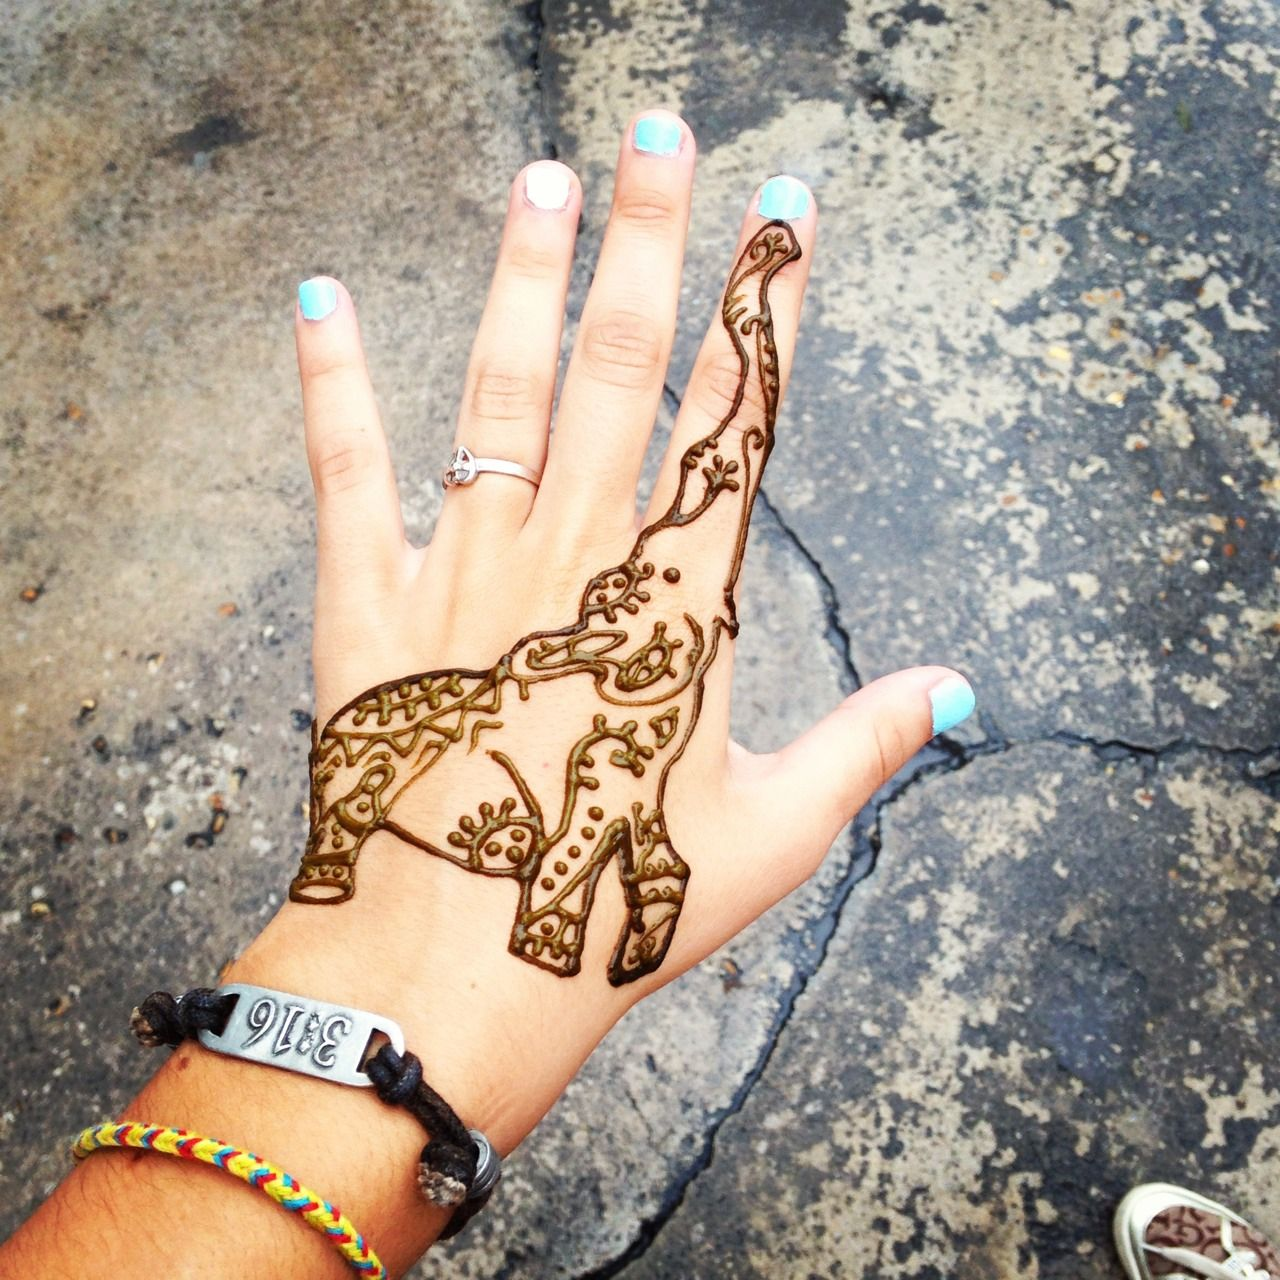 11 best images about Henna 2016   2017 on Pinterest   Shoulder besides Henna Tattoo Jacksonville Beach Fl   Skin Arts as well  also Talented Henna Tattoo Artists in Jacksonville Beach  FL   GigSalad likewise Home further 60 Simple Henna Tattoo Designs to try at least once   Drawings together with  together with  also Henna Tattoos On Fingers   Henna Tattoo Fingers   Pinterest in addition Henna Blog  Henna Tattoo Blog for Spirit Vision Henna in addition henna tattoo tumblr   Google Search   henna tattoo   Pinterest. on henna tattoo jacksonville fl